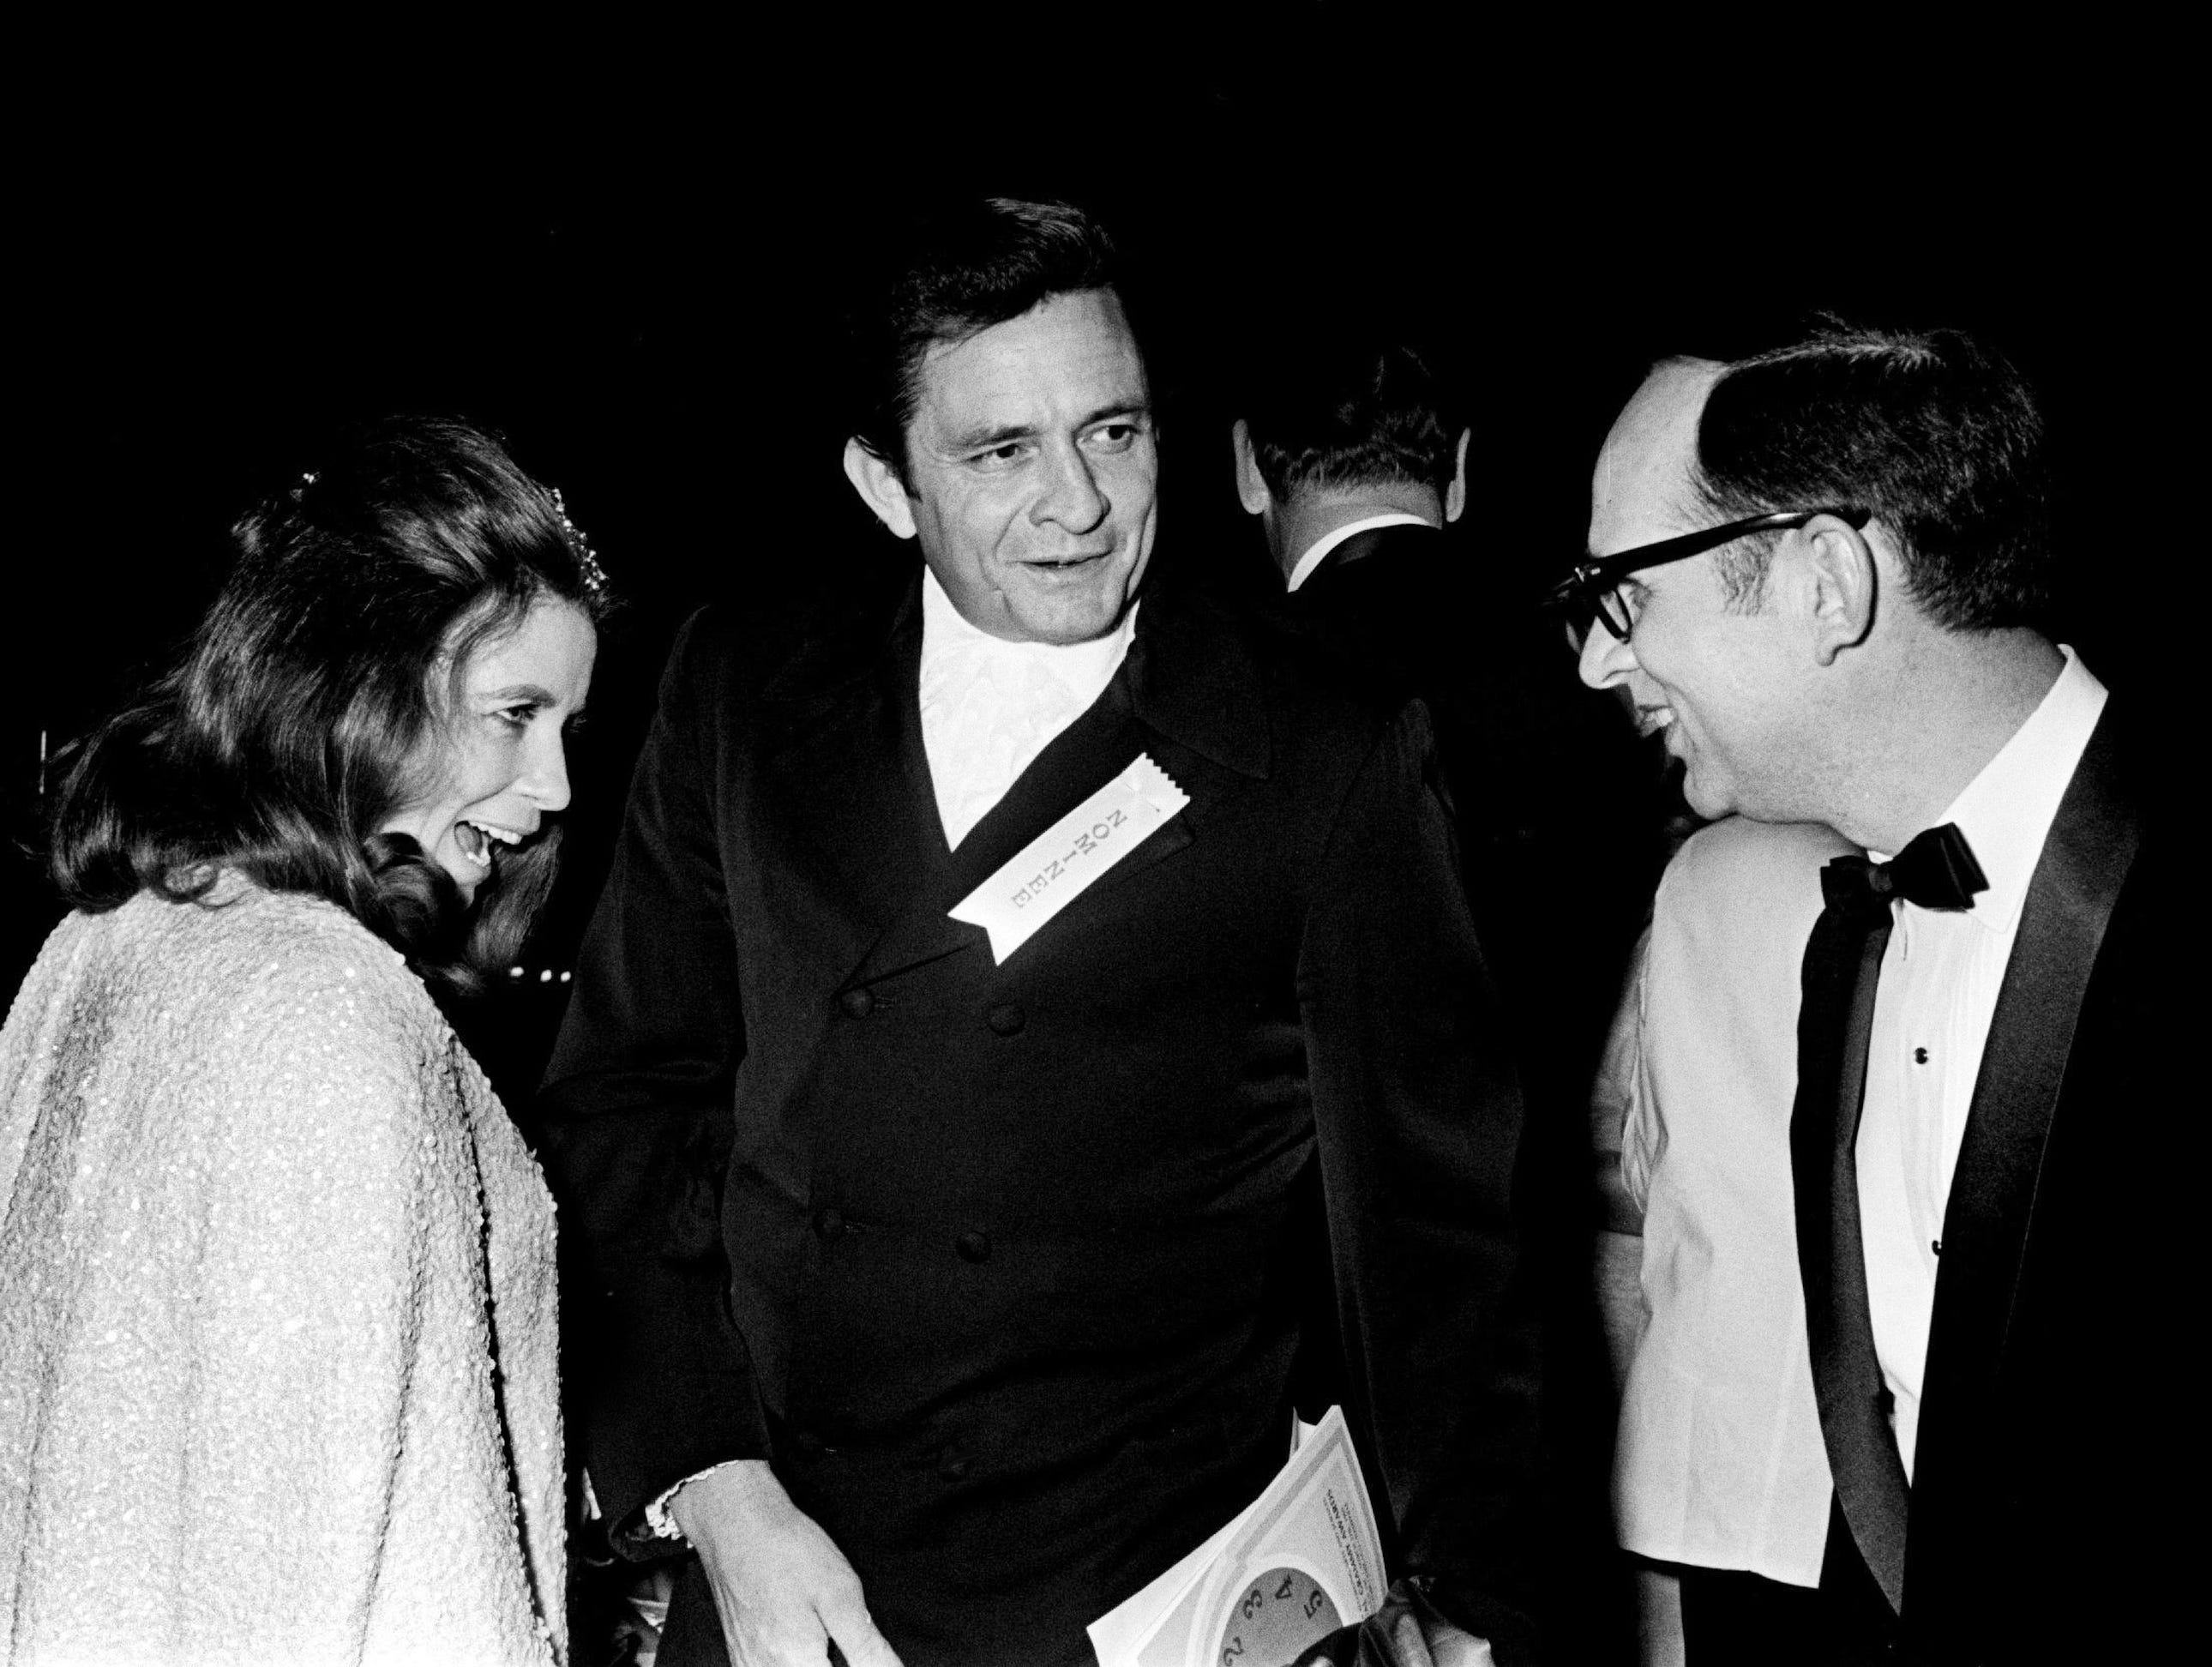 June Carter Cash, left, and Johnny Cash greets a guest after arriving for the 11th annual Grammy Award show at the National Guard Armory in Nashville March 12, 1969. The awards were presented simultaneously at banquets in New York, Chicago, Los Angeles and Nashville.